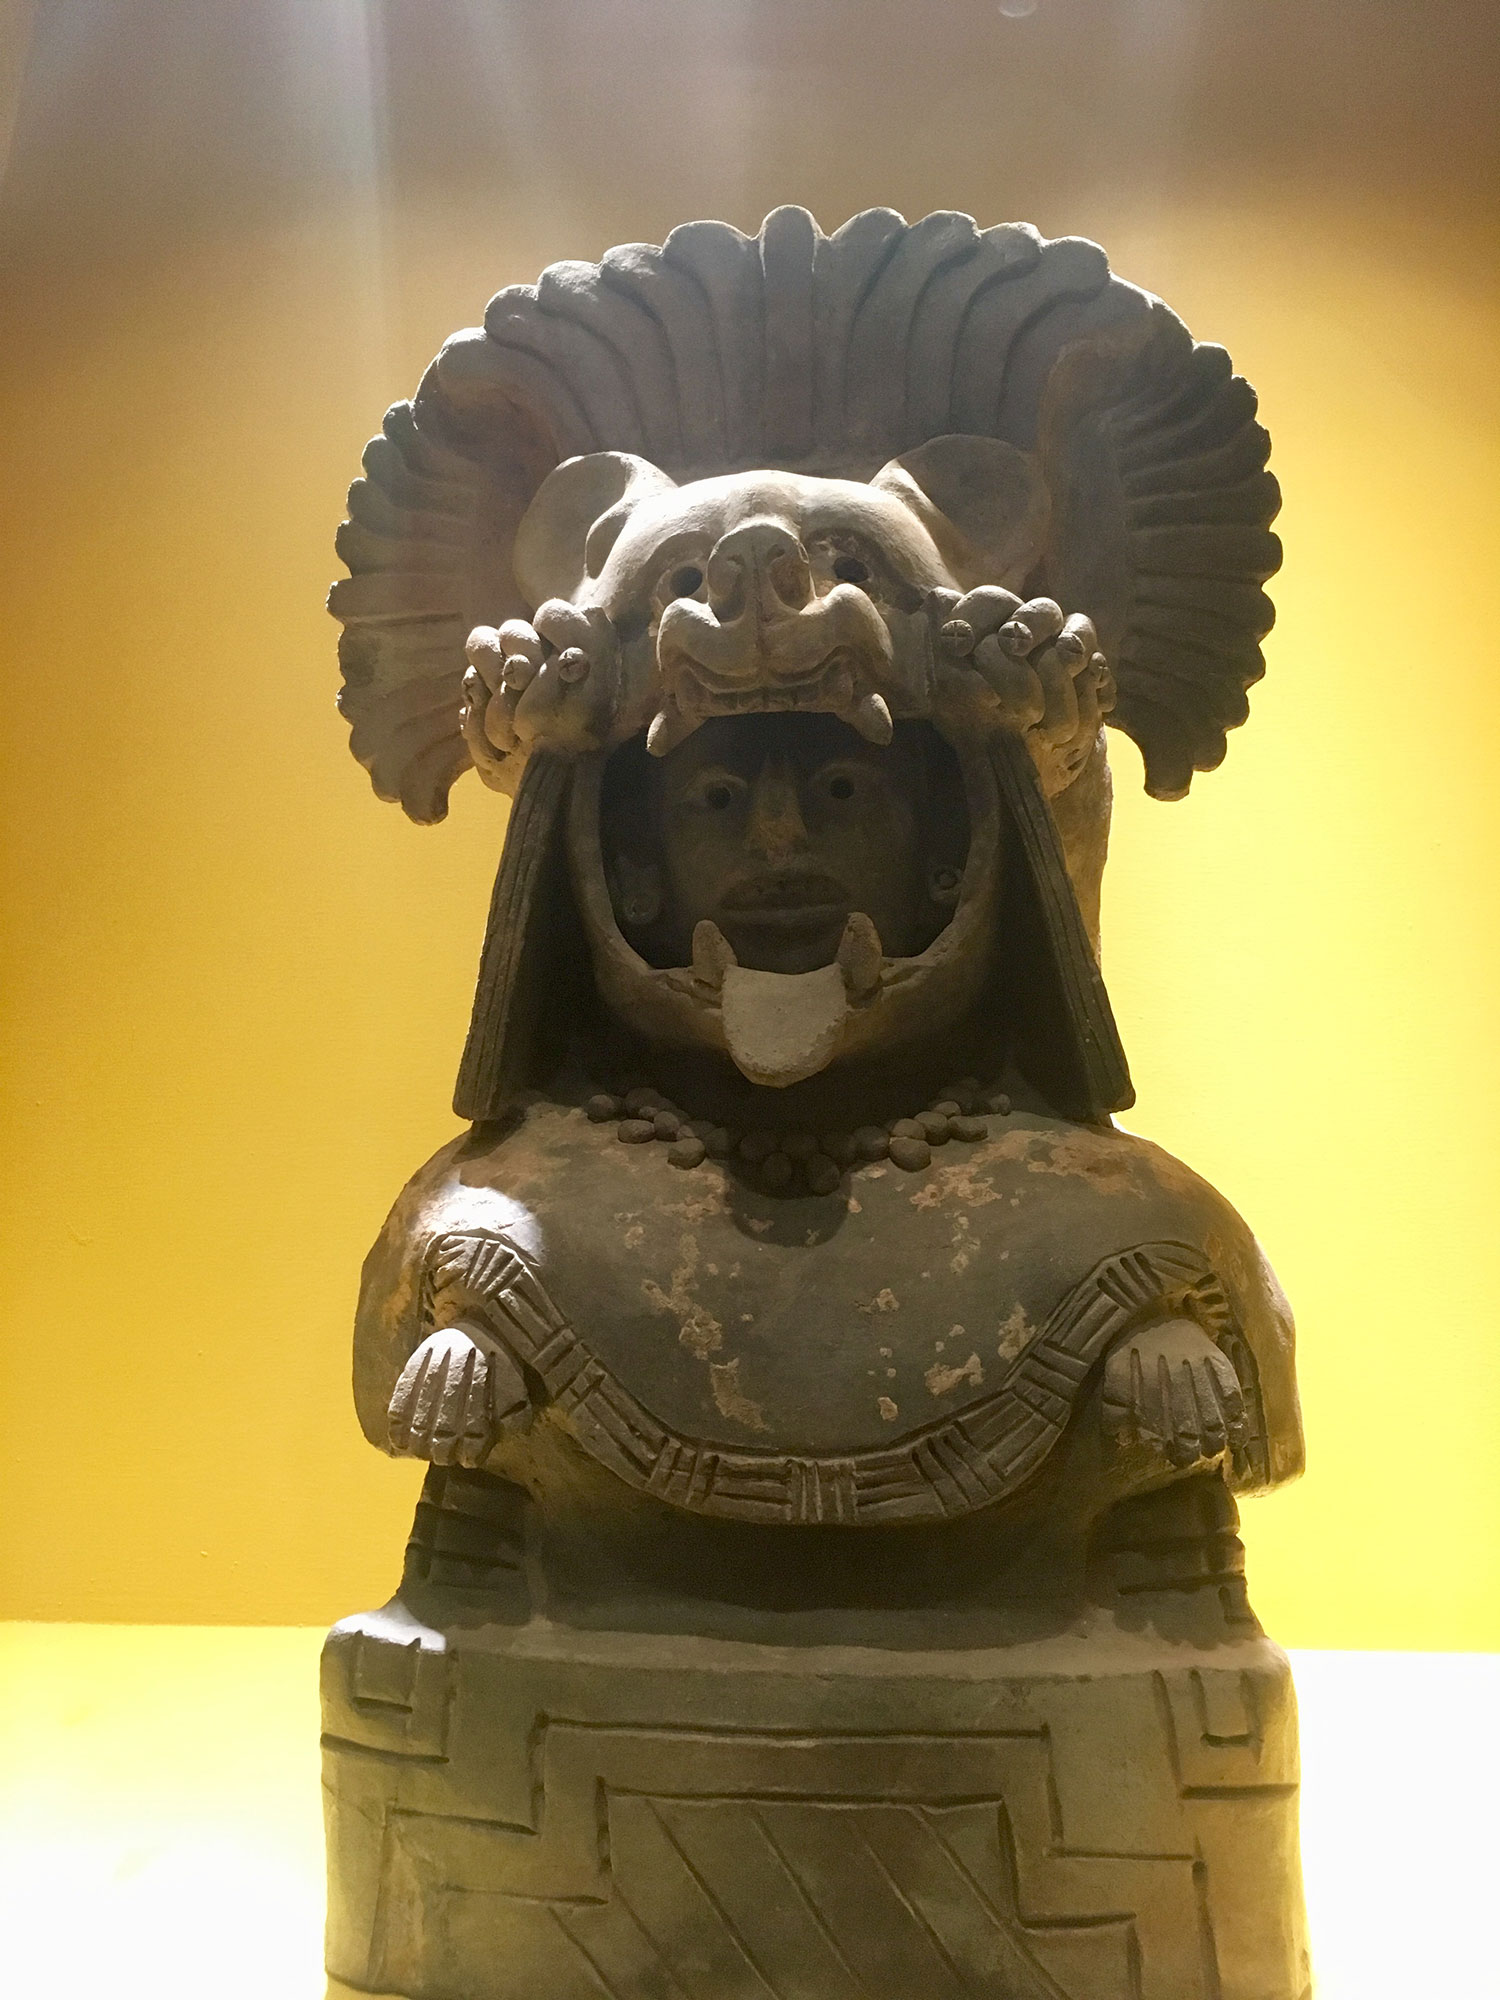 A royal dynasty from 500 BC, from Tomb 95-1, with a jaguar helmet.